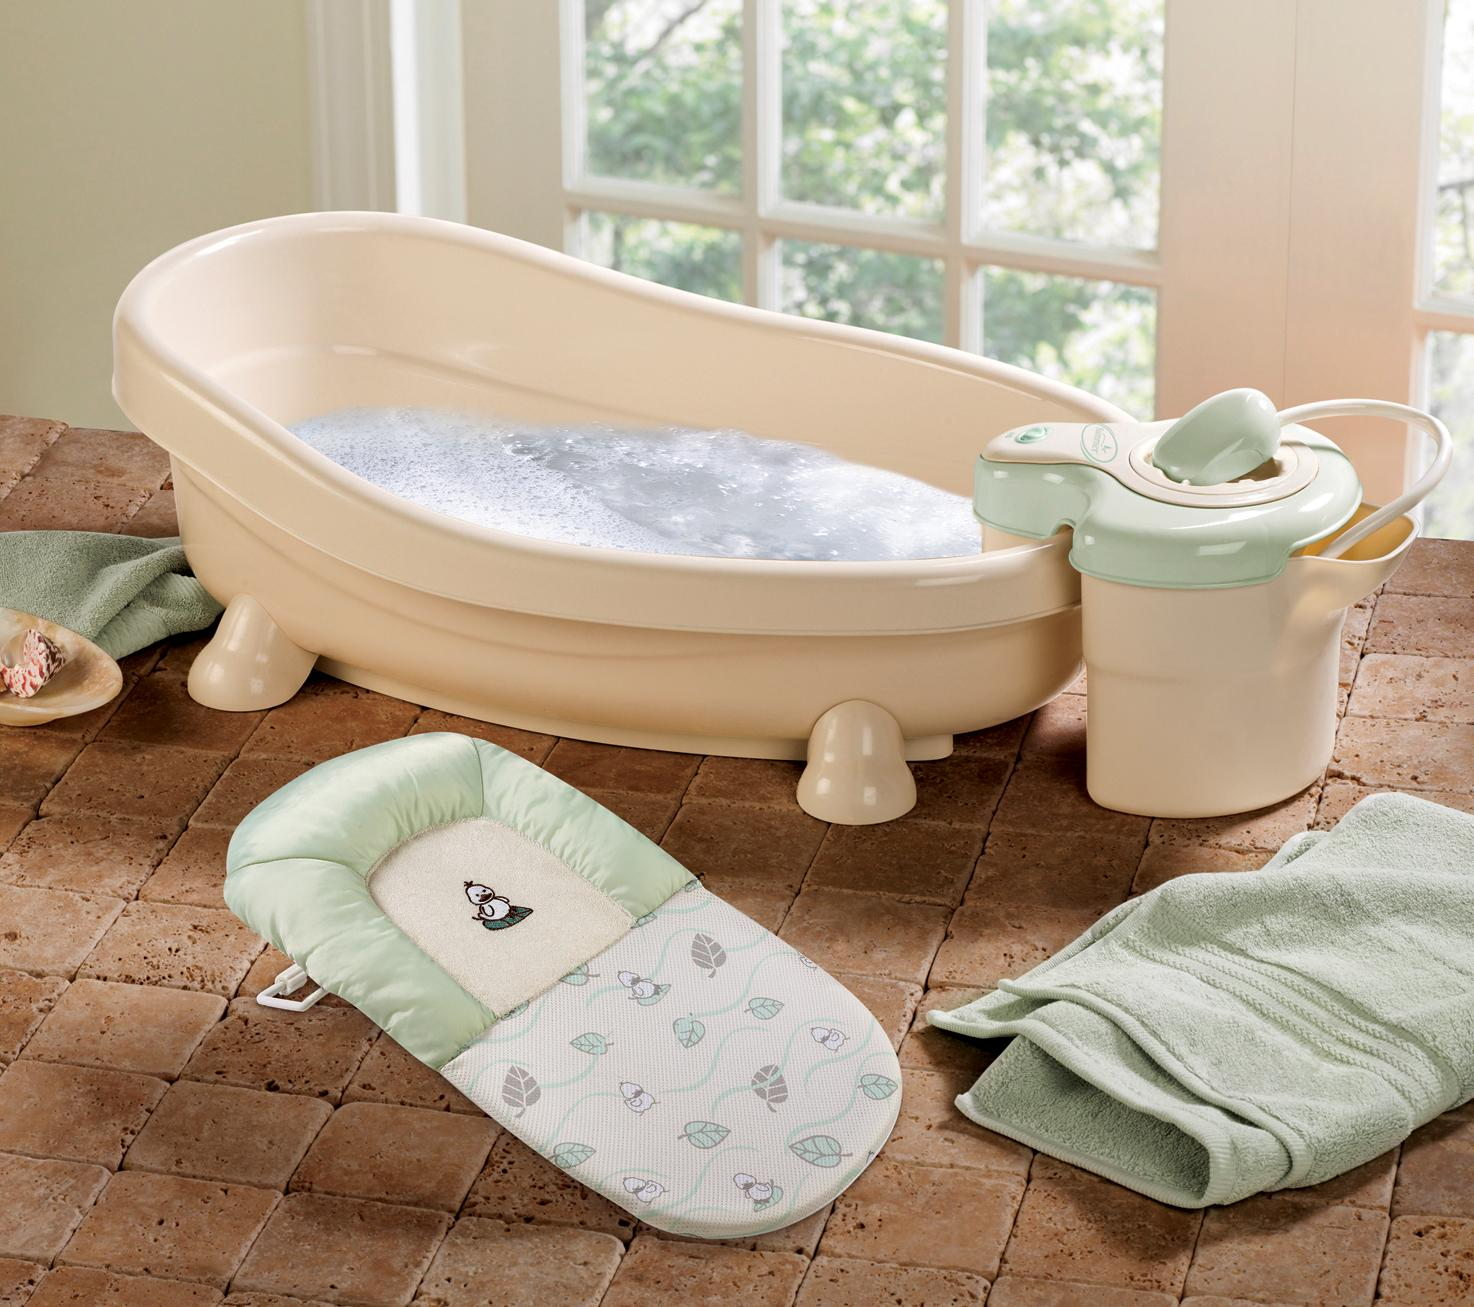 summer infant soothing spa and shower baby bath equipment review compare prices buy online. Black Bedroom Furniture Sets. Home Design Ideas